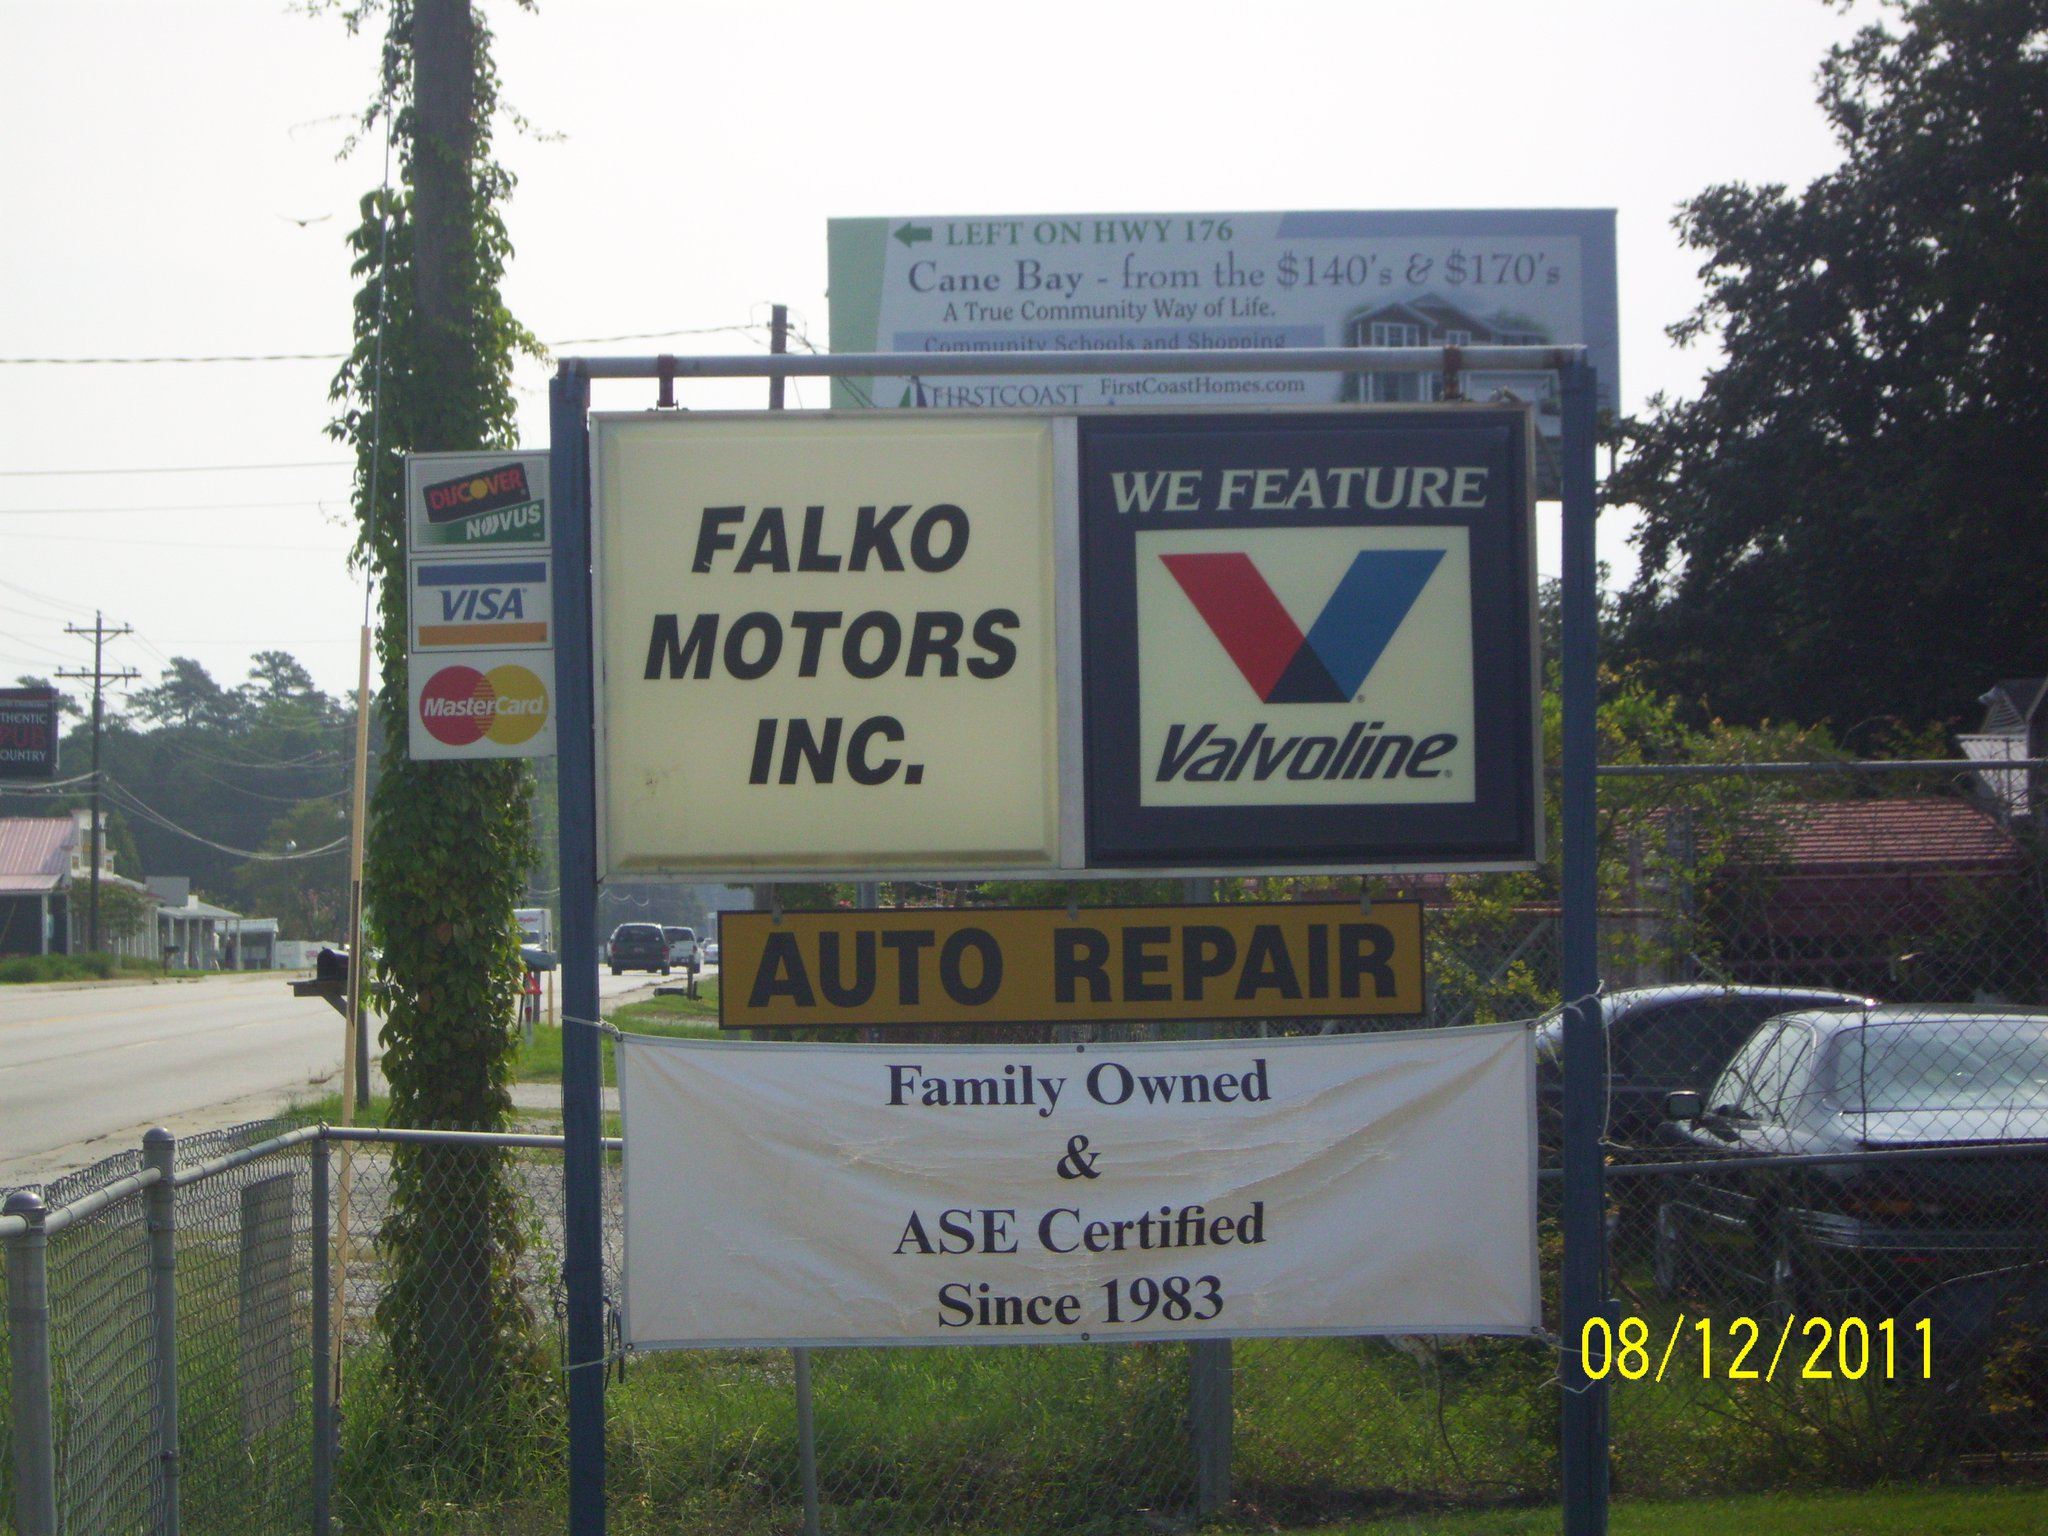 Falko Motors Inc.